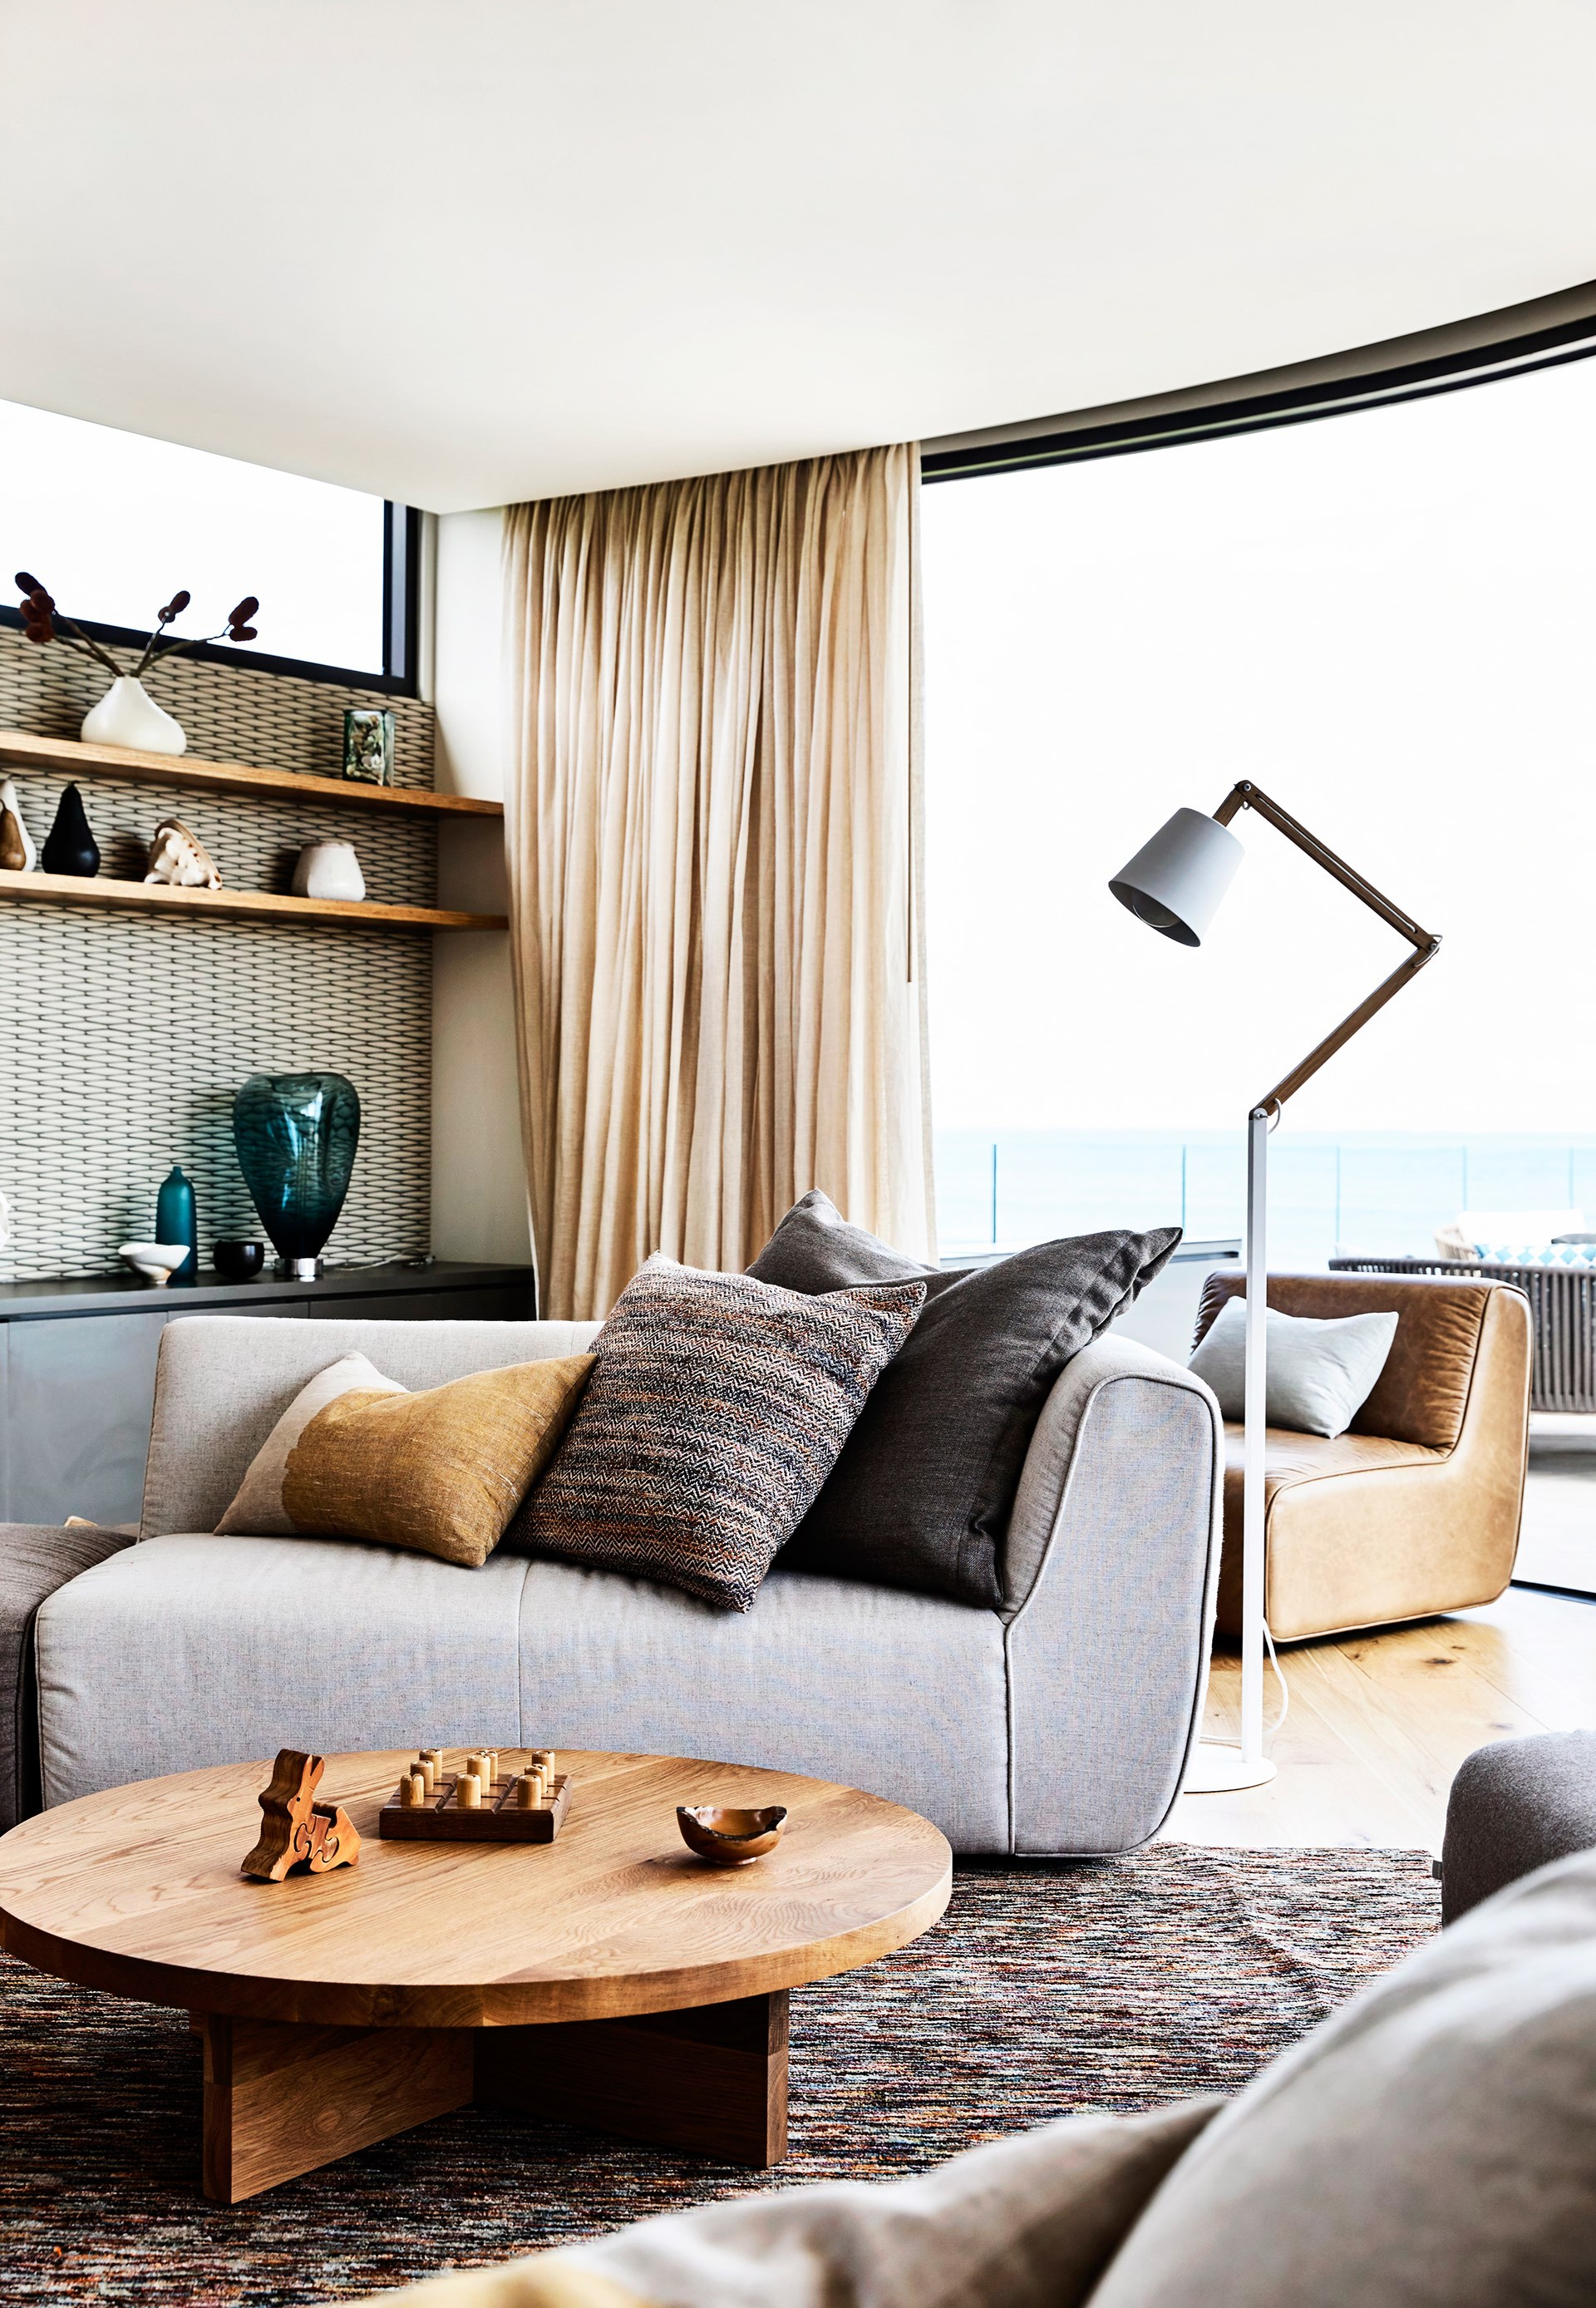 Don't be afraid to fill the room and create multiple seating areas, if you have the space.